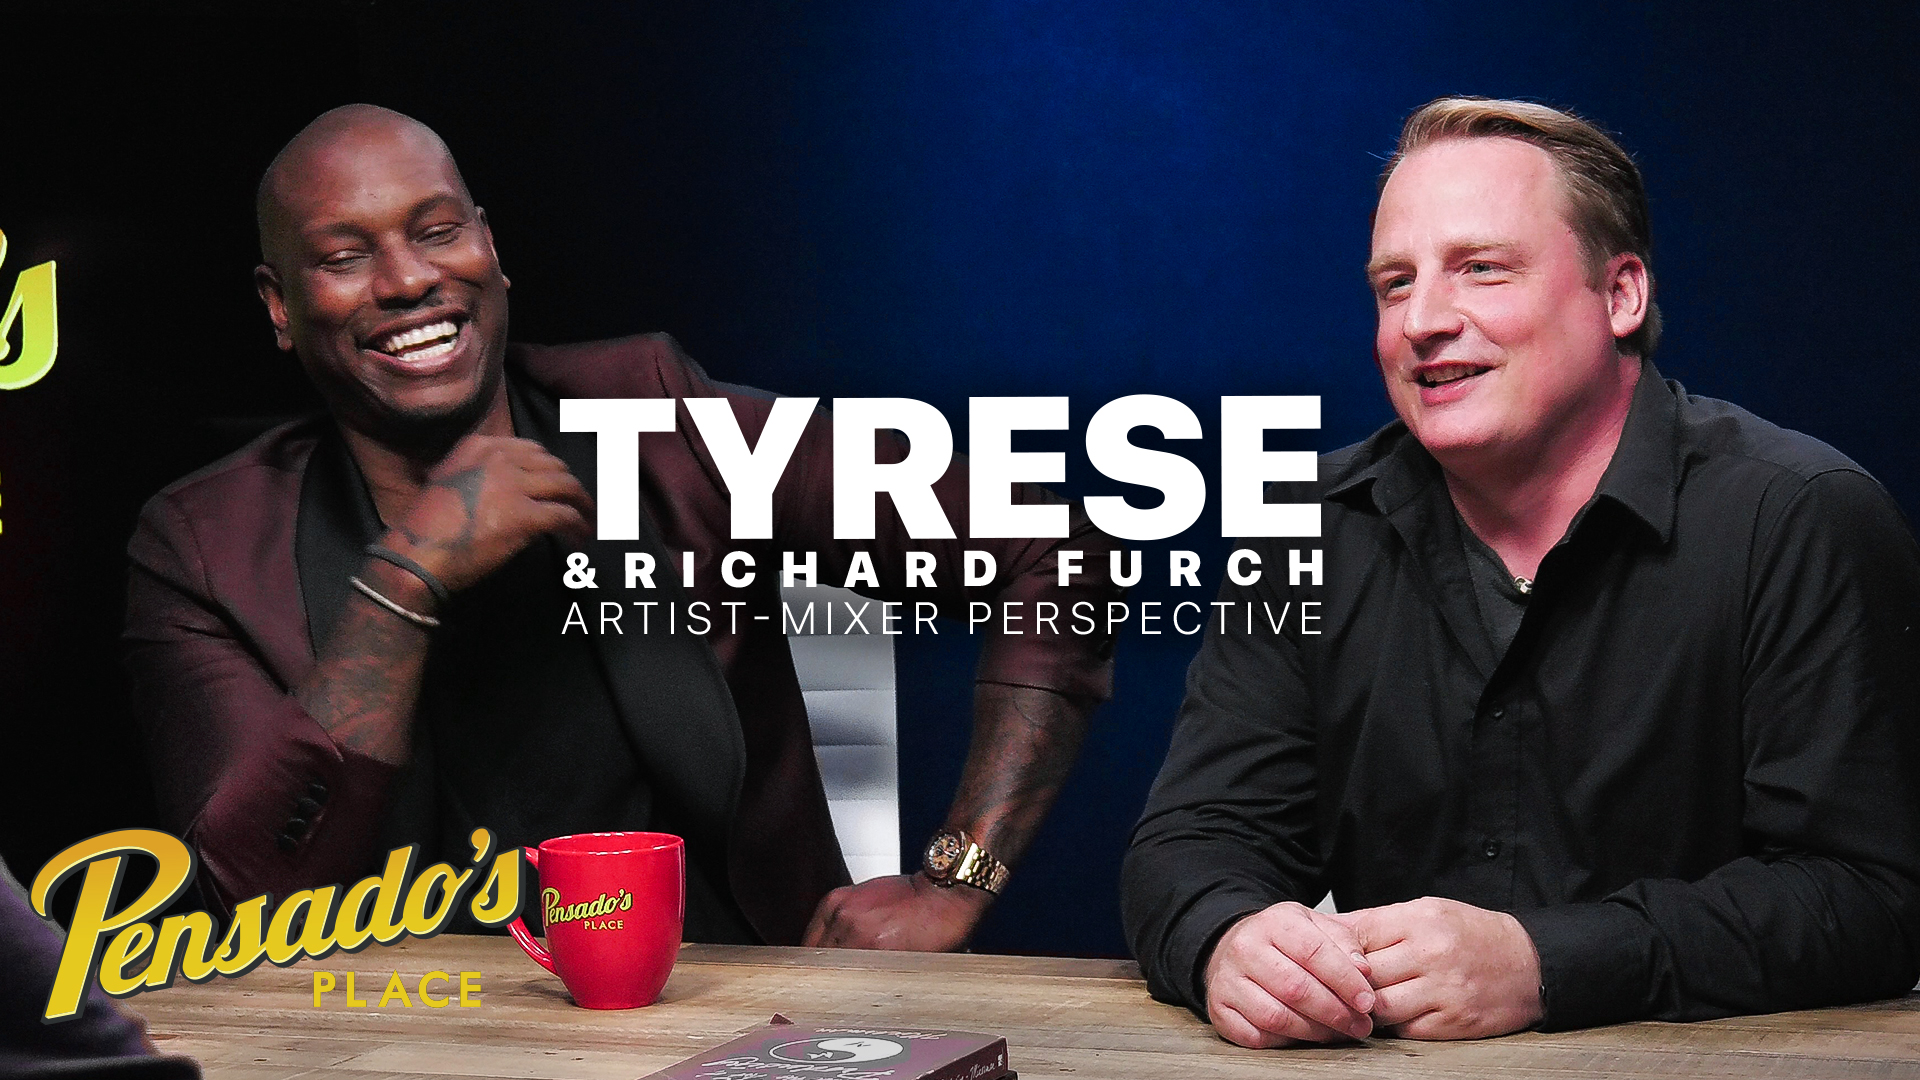 Artist-Mixer Perspective with Tyrese and Richard Furch